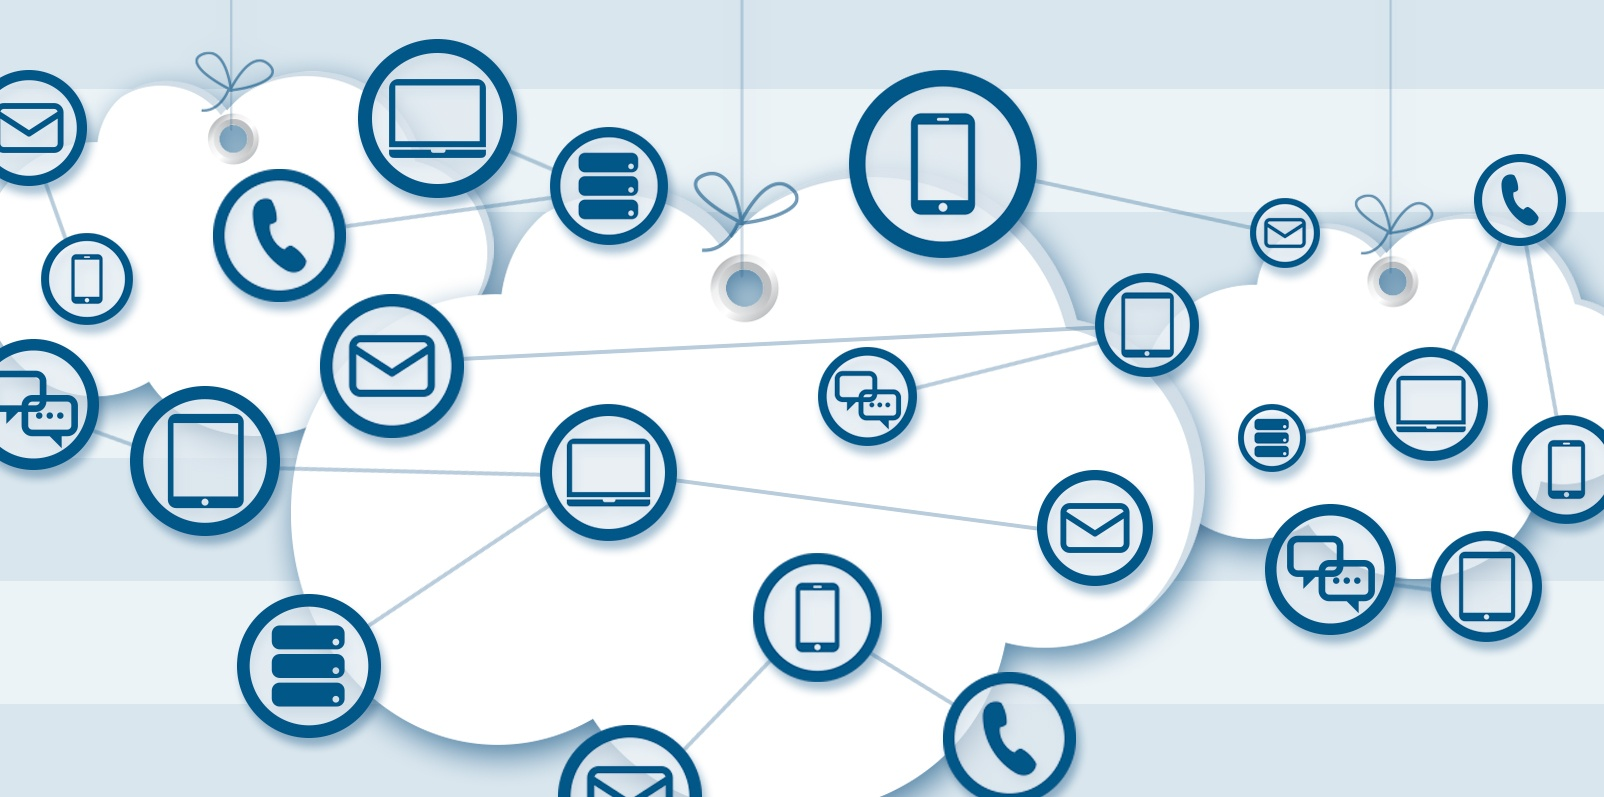 ten-reasons-to-move-your-communications-to-the-cloud-in-2019.jpg